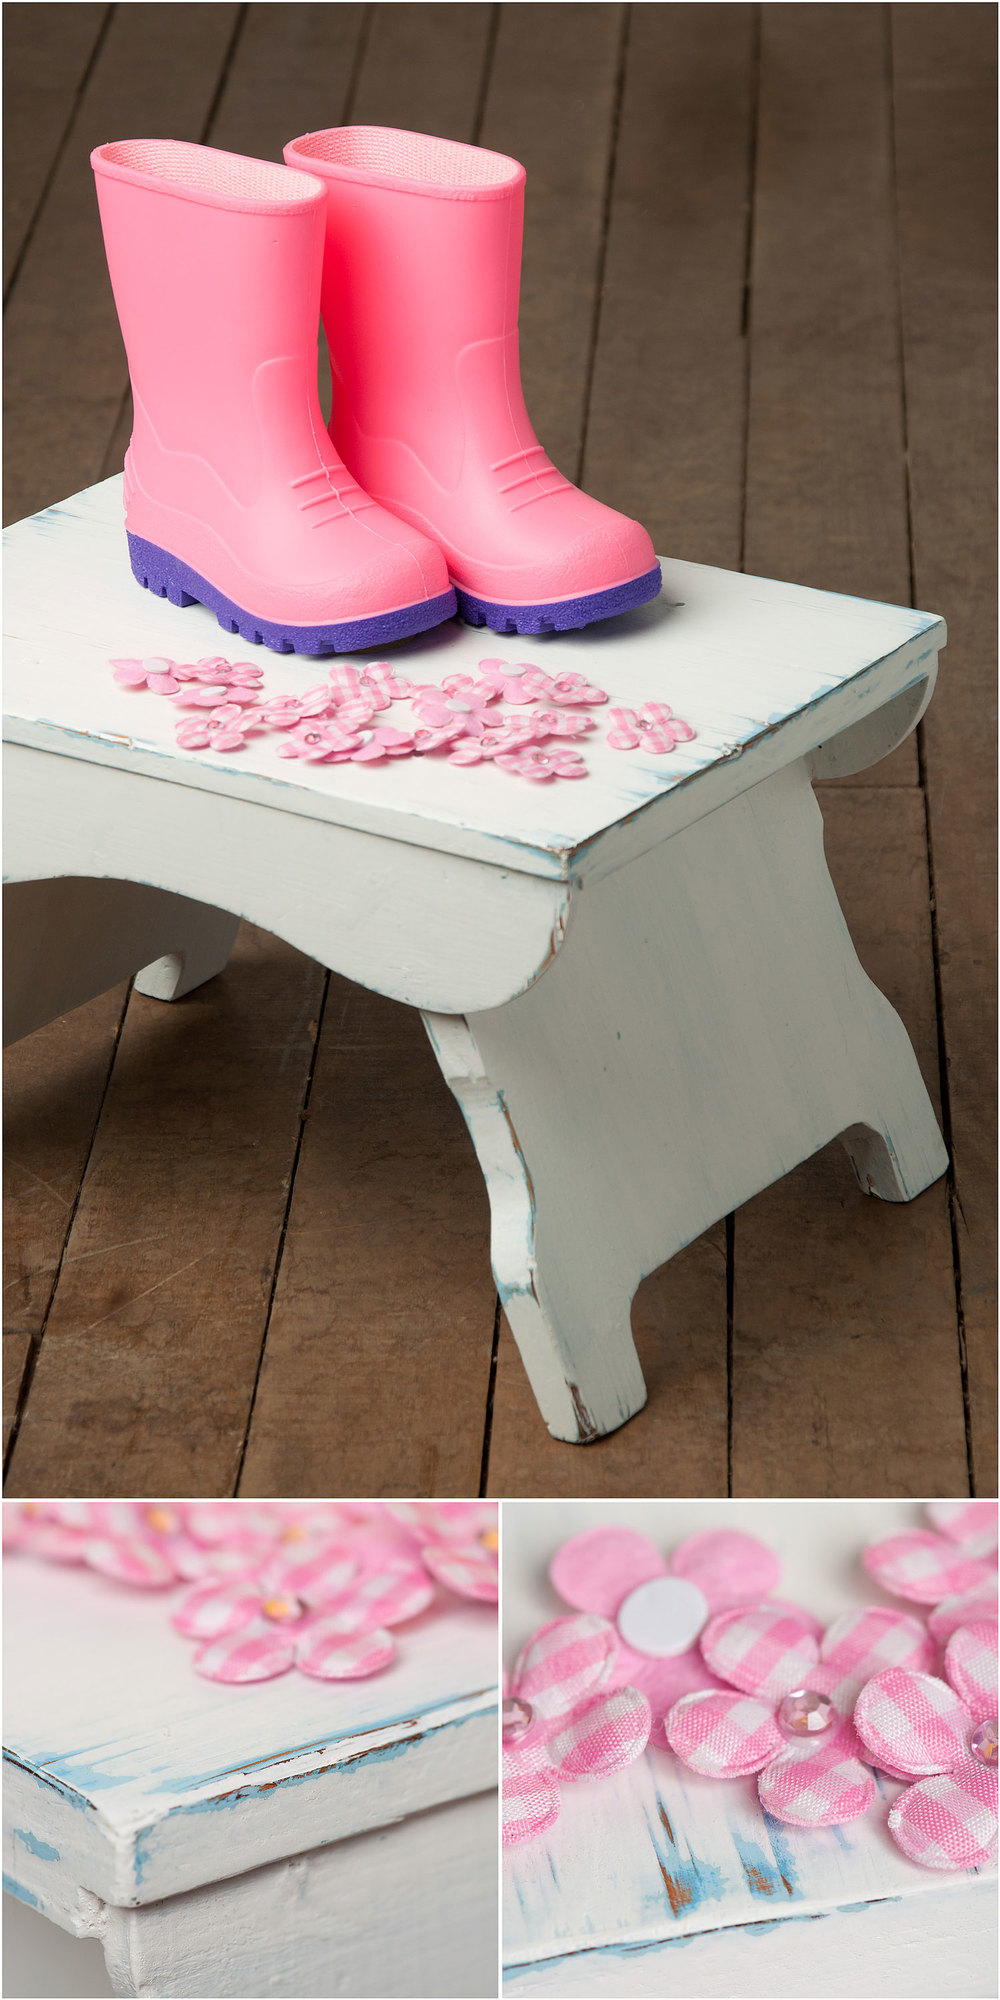 Stool painted in flour sack Sweet Pickins milk paint - via My Painted Door (.com)